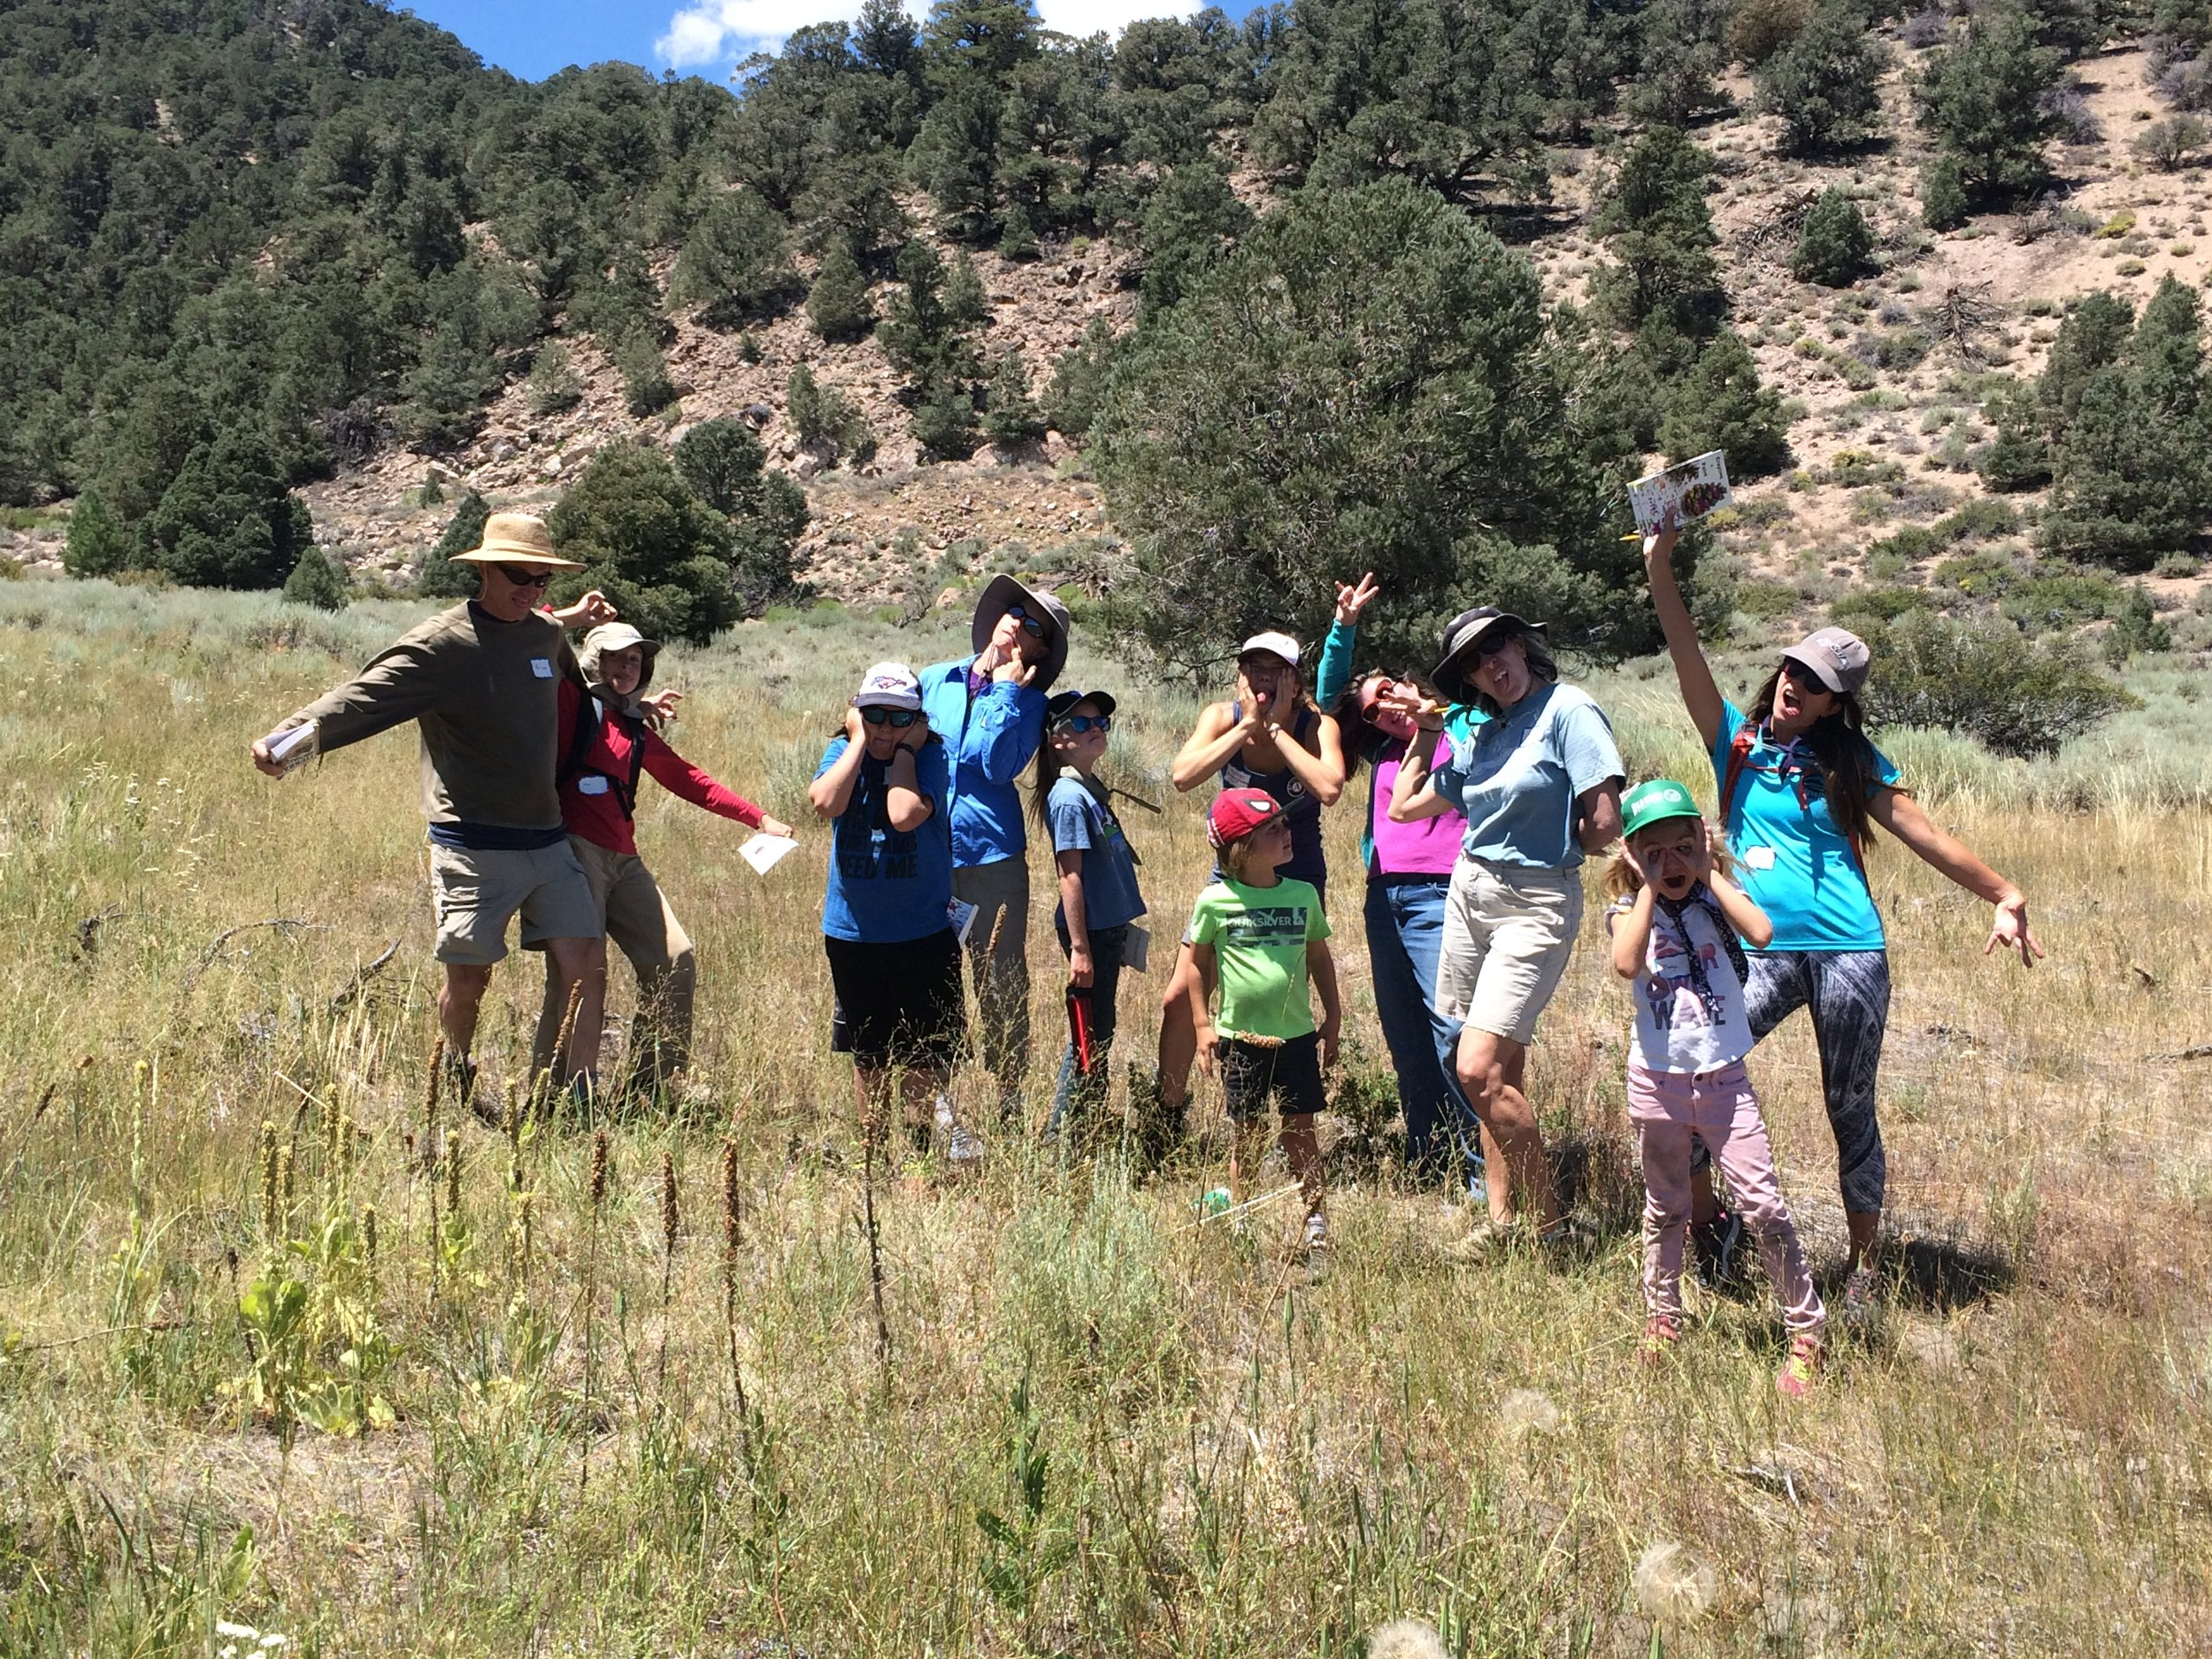 At Eastern Sierra Land Trust's Crayons & Paint on August 4th, kids and their families are invited to play games, get creative, and explore nature. Photo © Kay Ogden